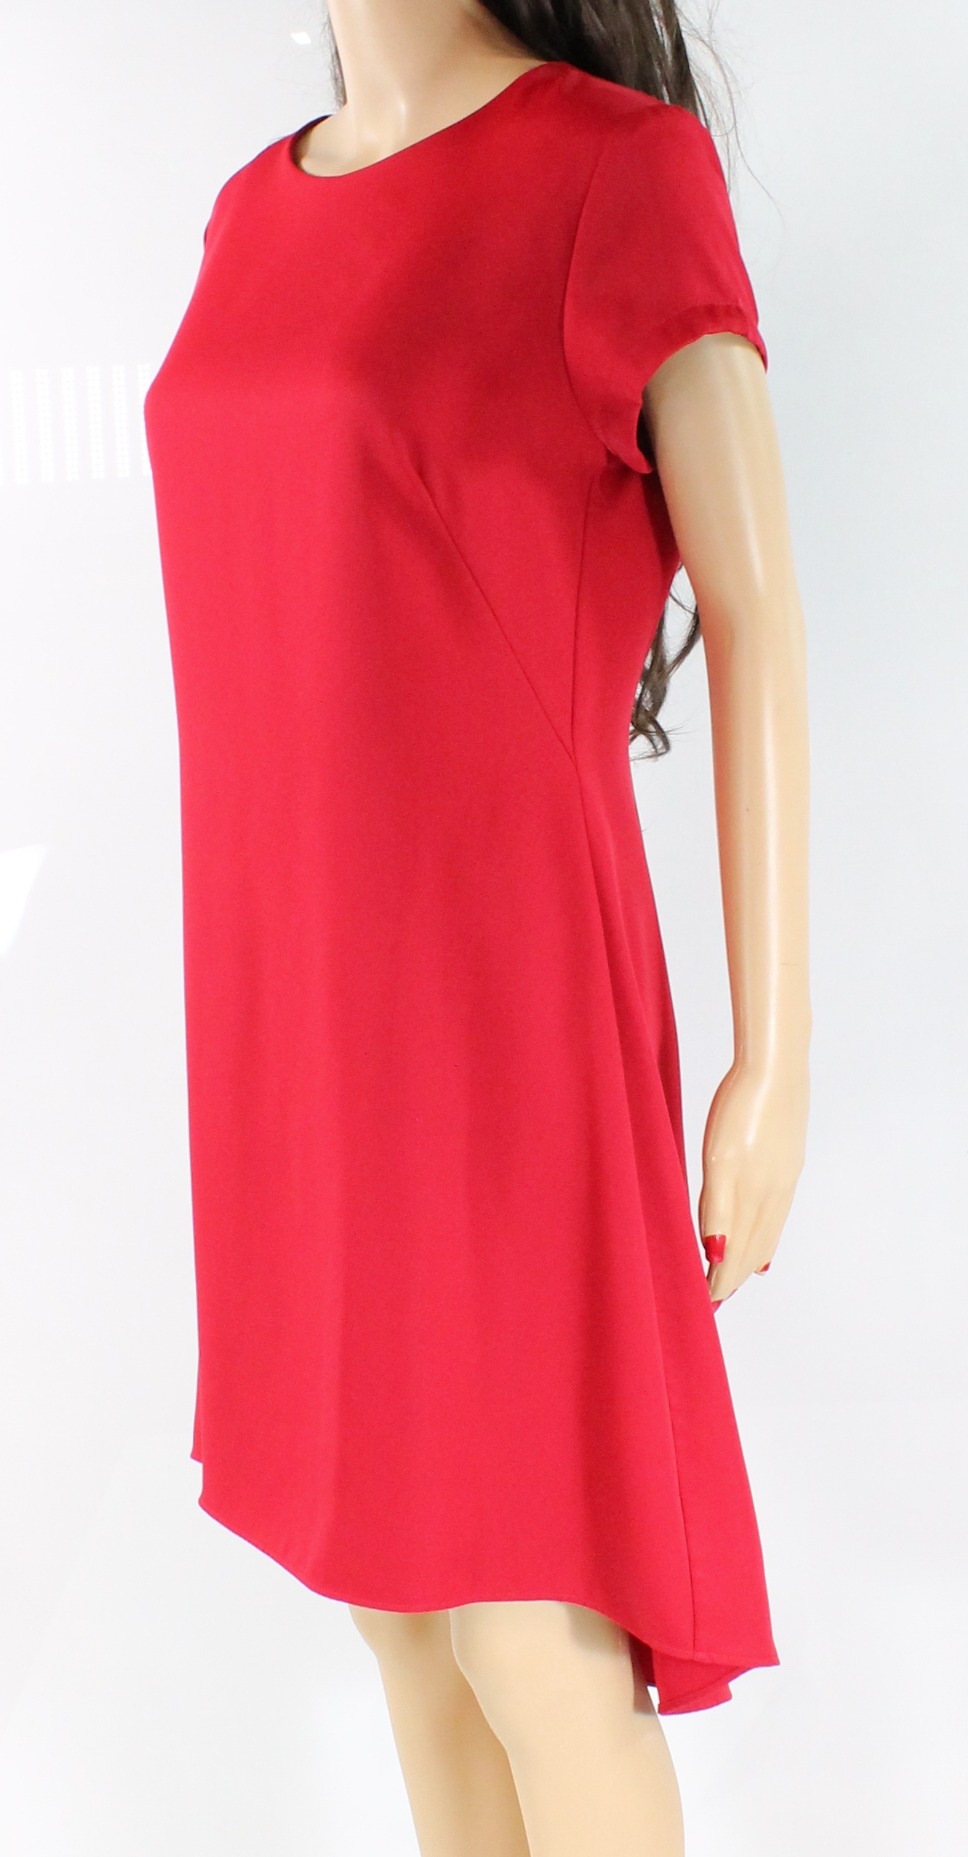 Nha Khanh Red Crepe Short-Sleeve Women's Size Size Size 6 Hi-Low A-Line Dress  425- 513ac6